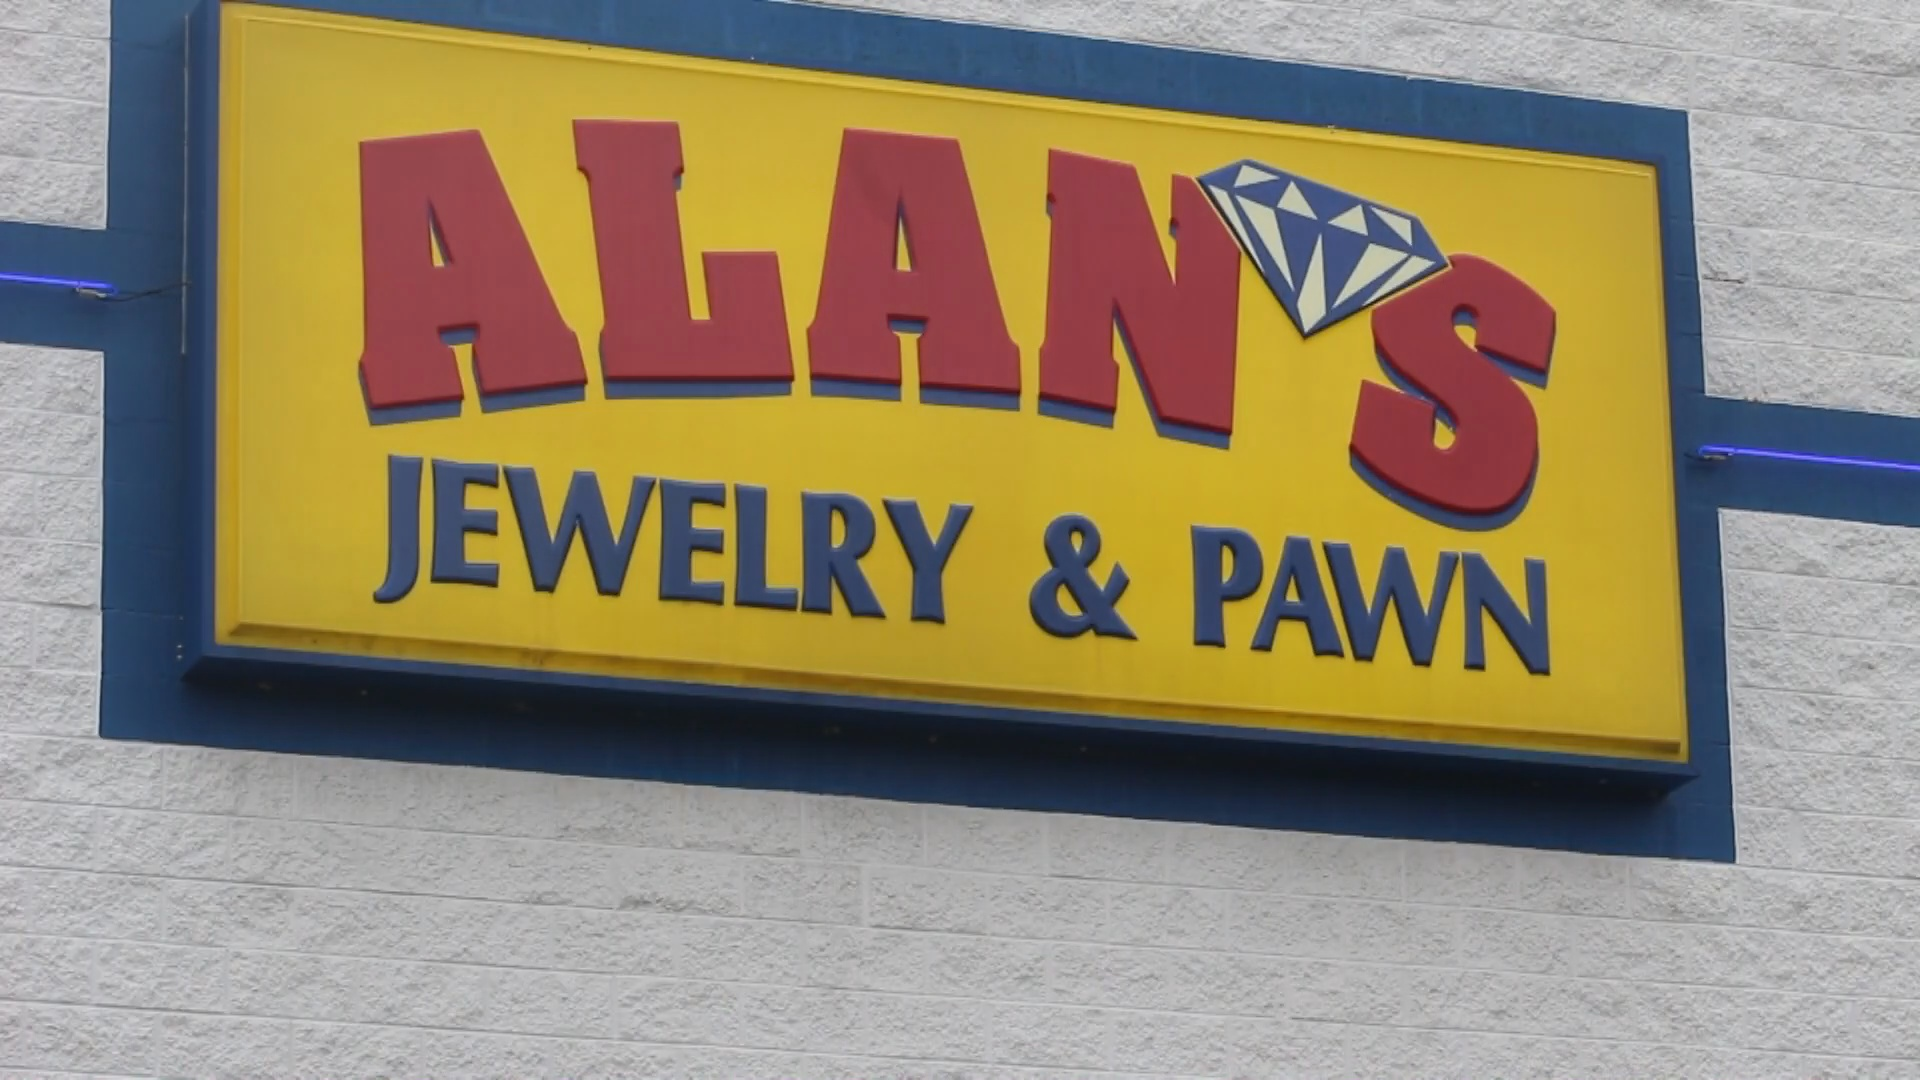 Alan 39 s jewelry pawn marks diamond anniversary the 828 for Alan s jewelry pawn